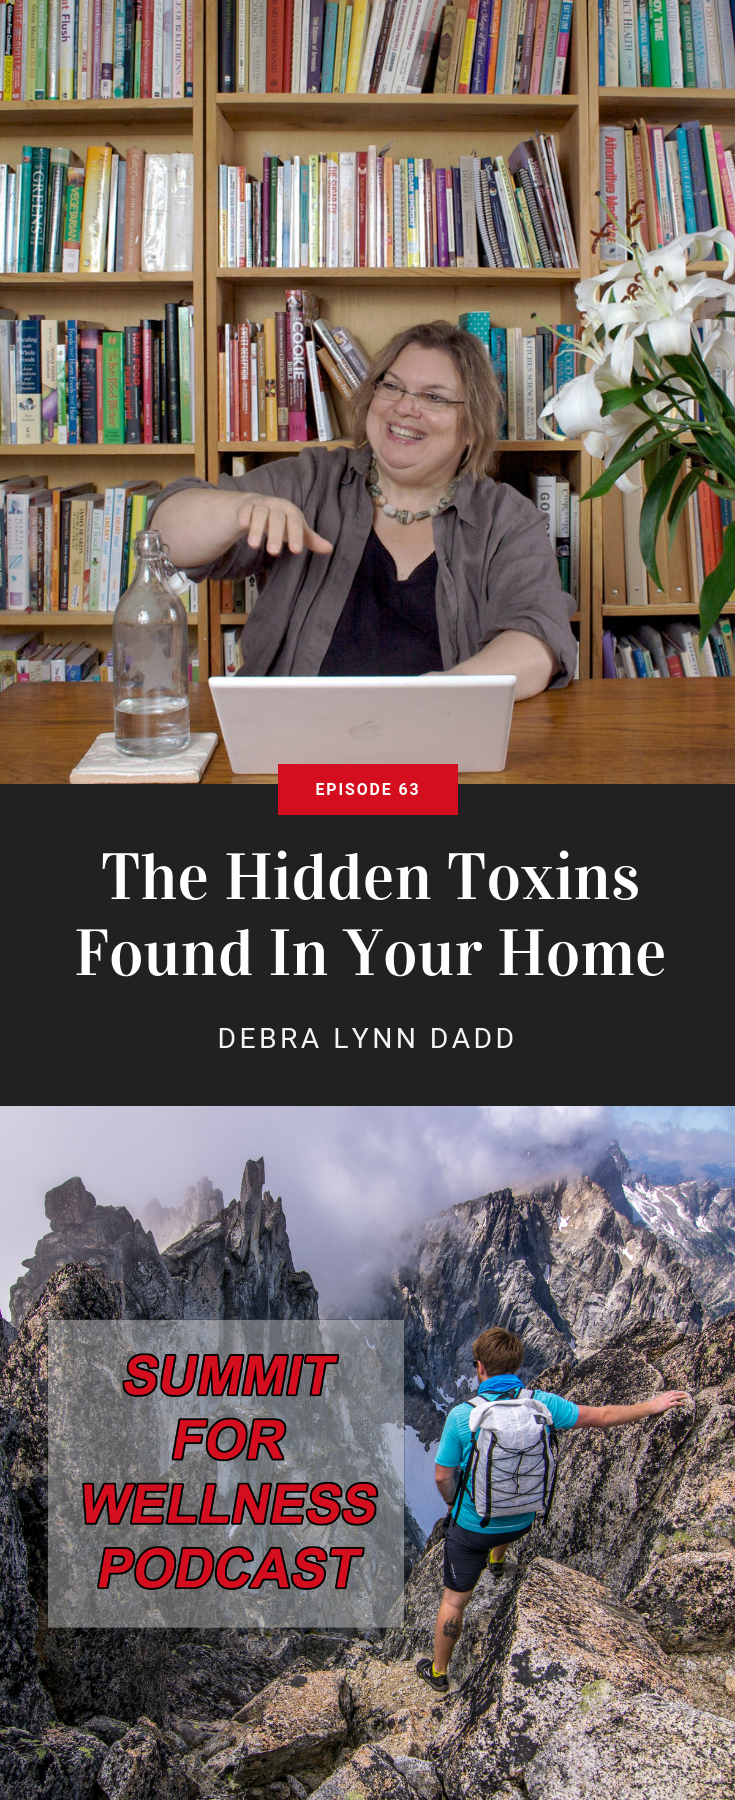 Do you know where hidden toxins are in your home? Debra Lynn Dadd helps us become detectives to remove these hidden toxins